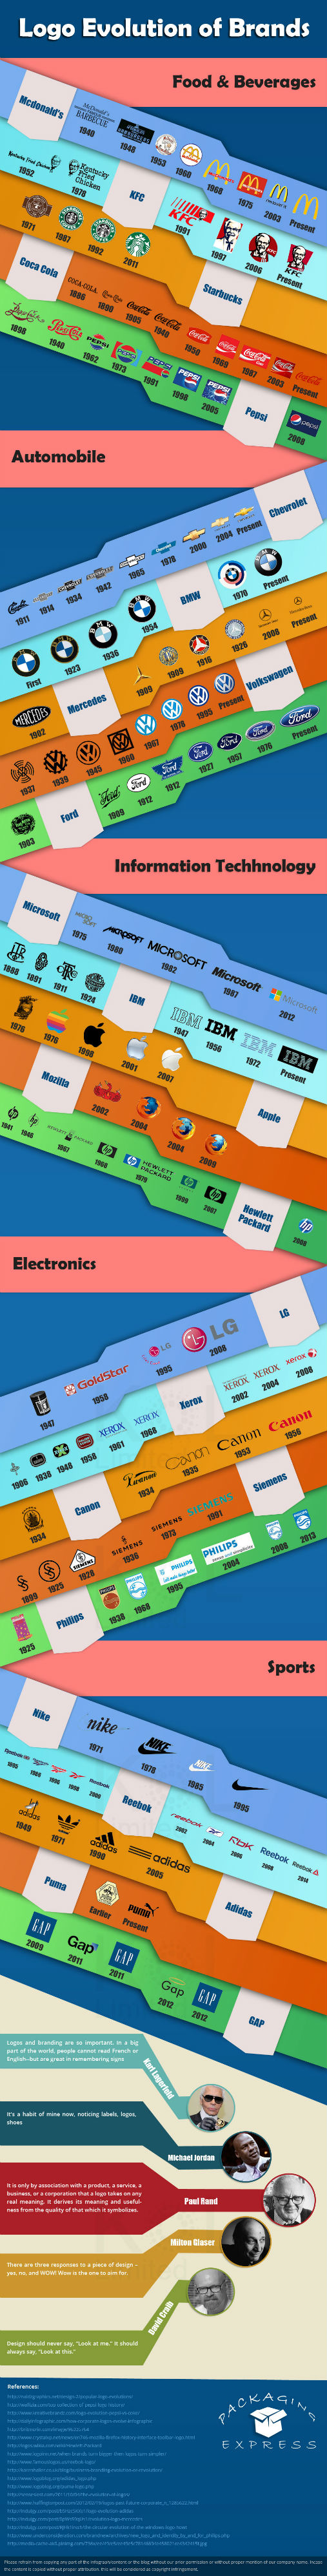 Why Logos Evolve With Time [Infographic]